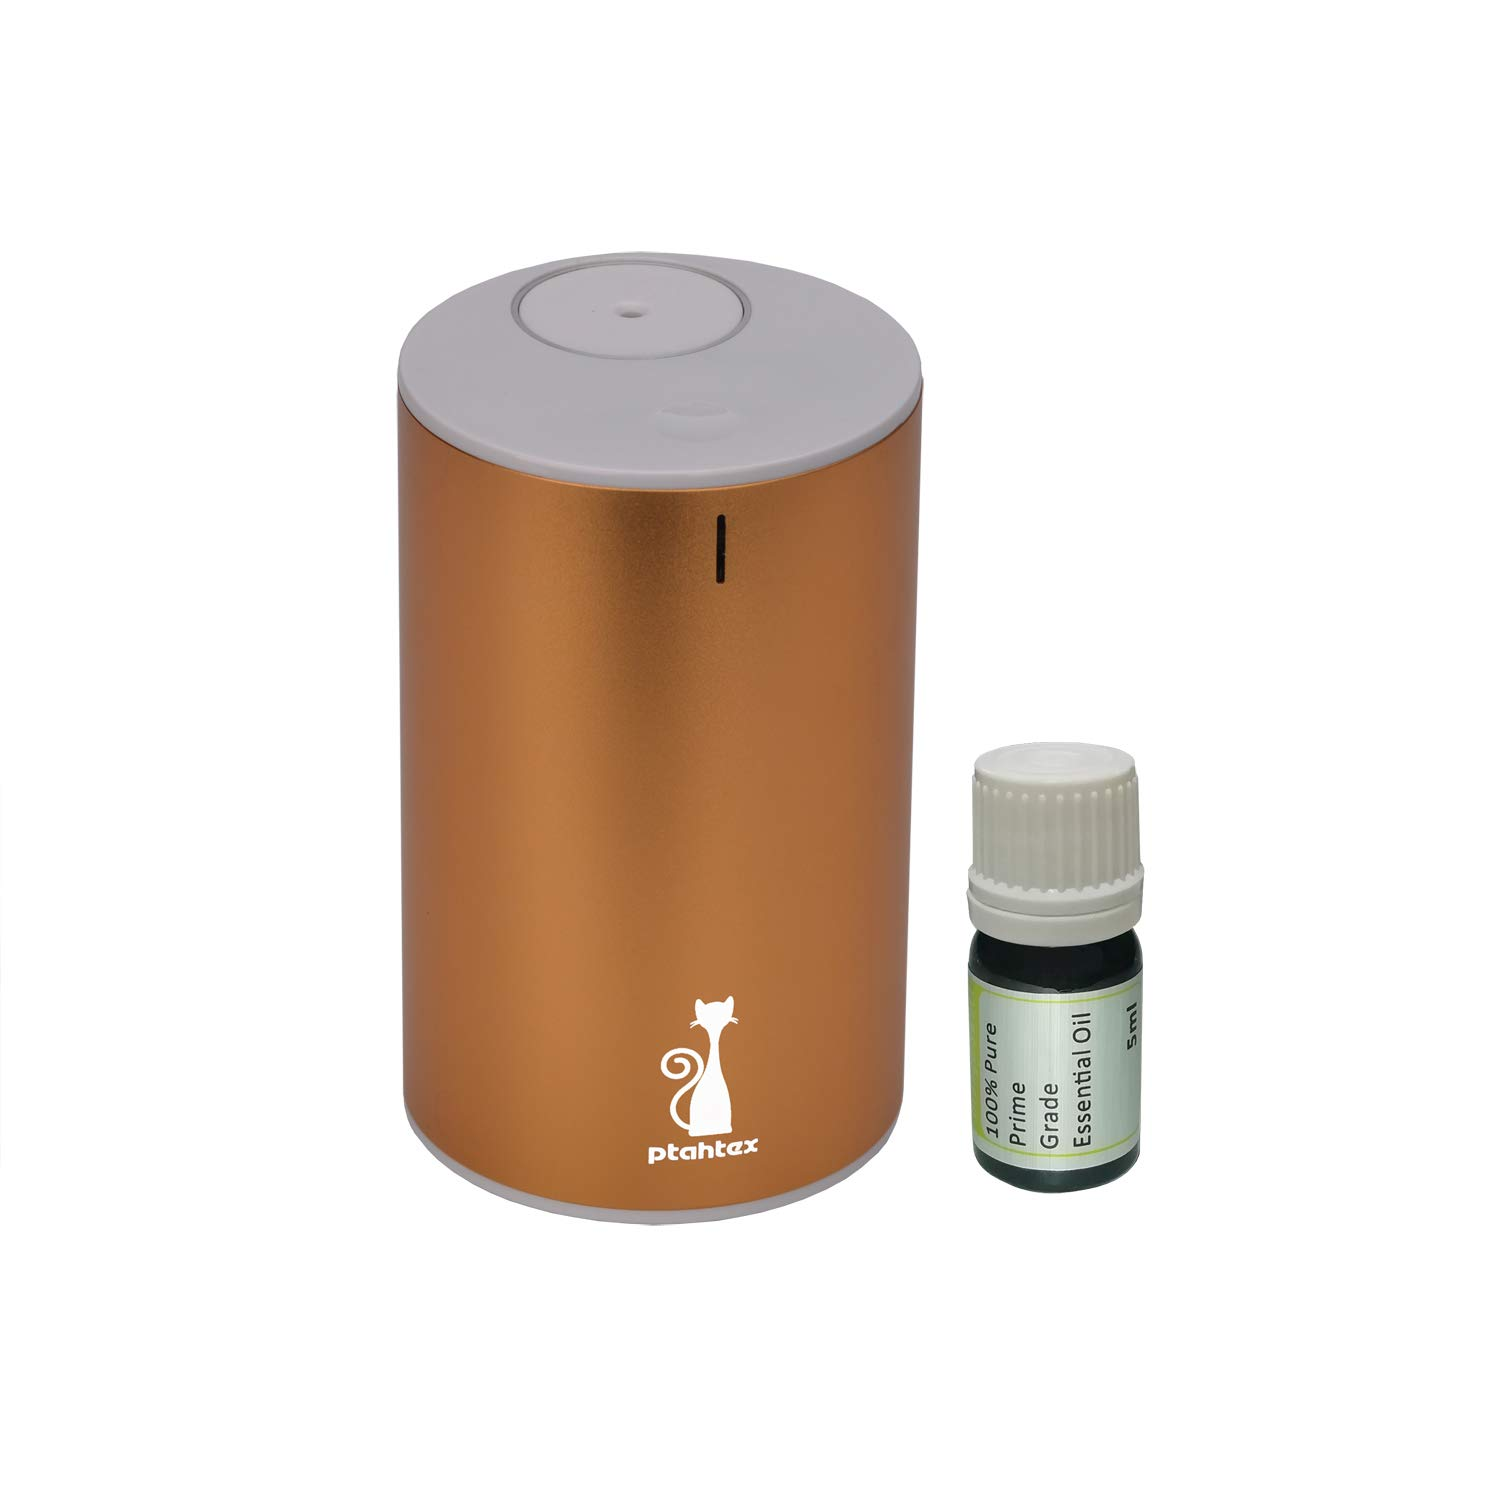 Essential Oil Diffuser, PtahTex Big Nebulizing, Waterless Battery Operated, Aromatherapy Atomized, Gold, Office, Home, Car